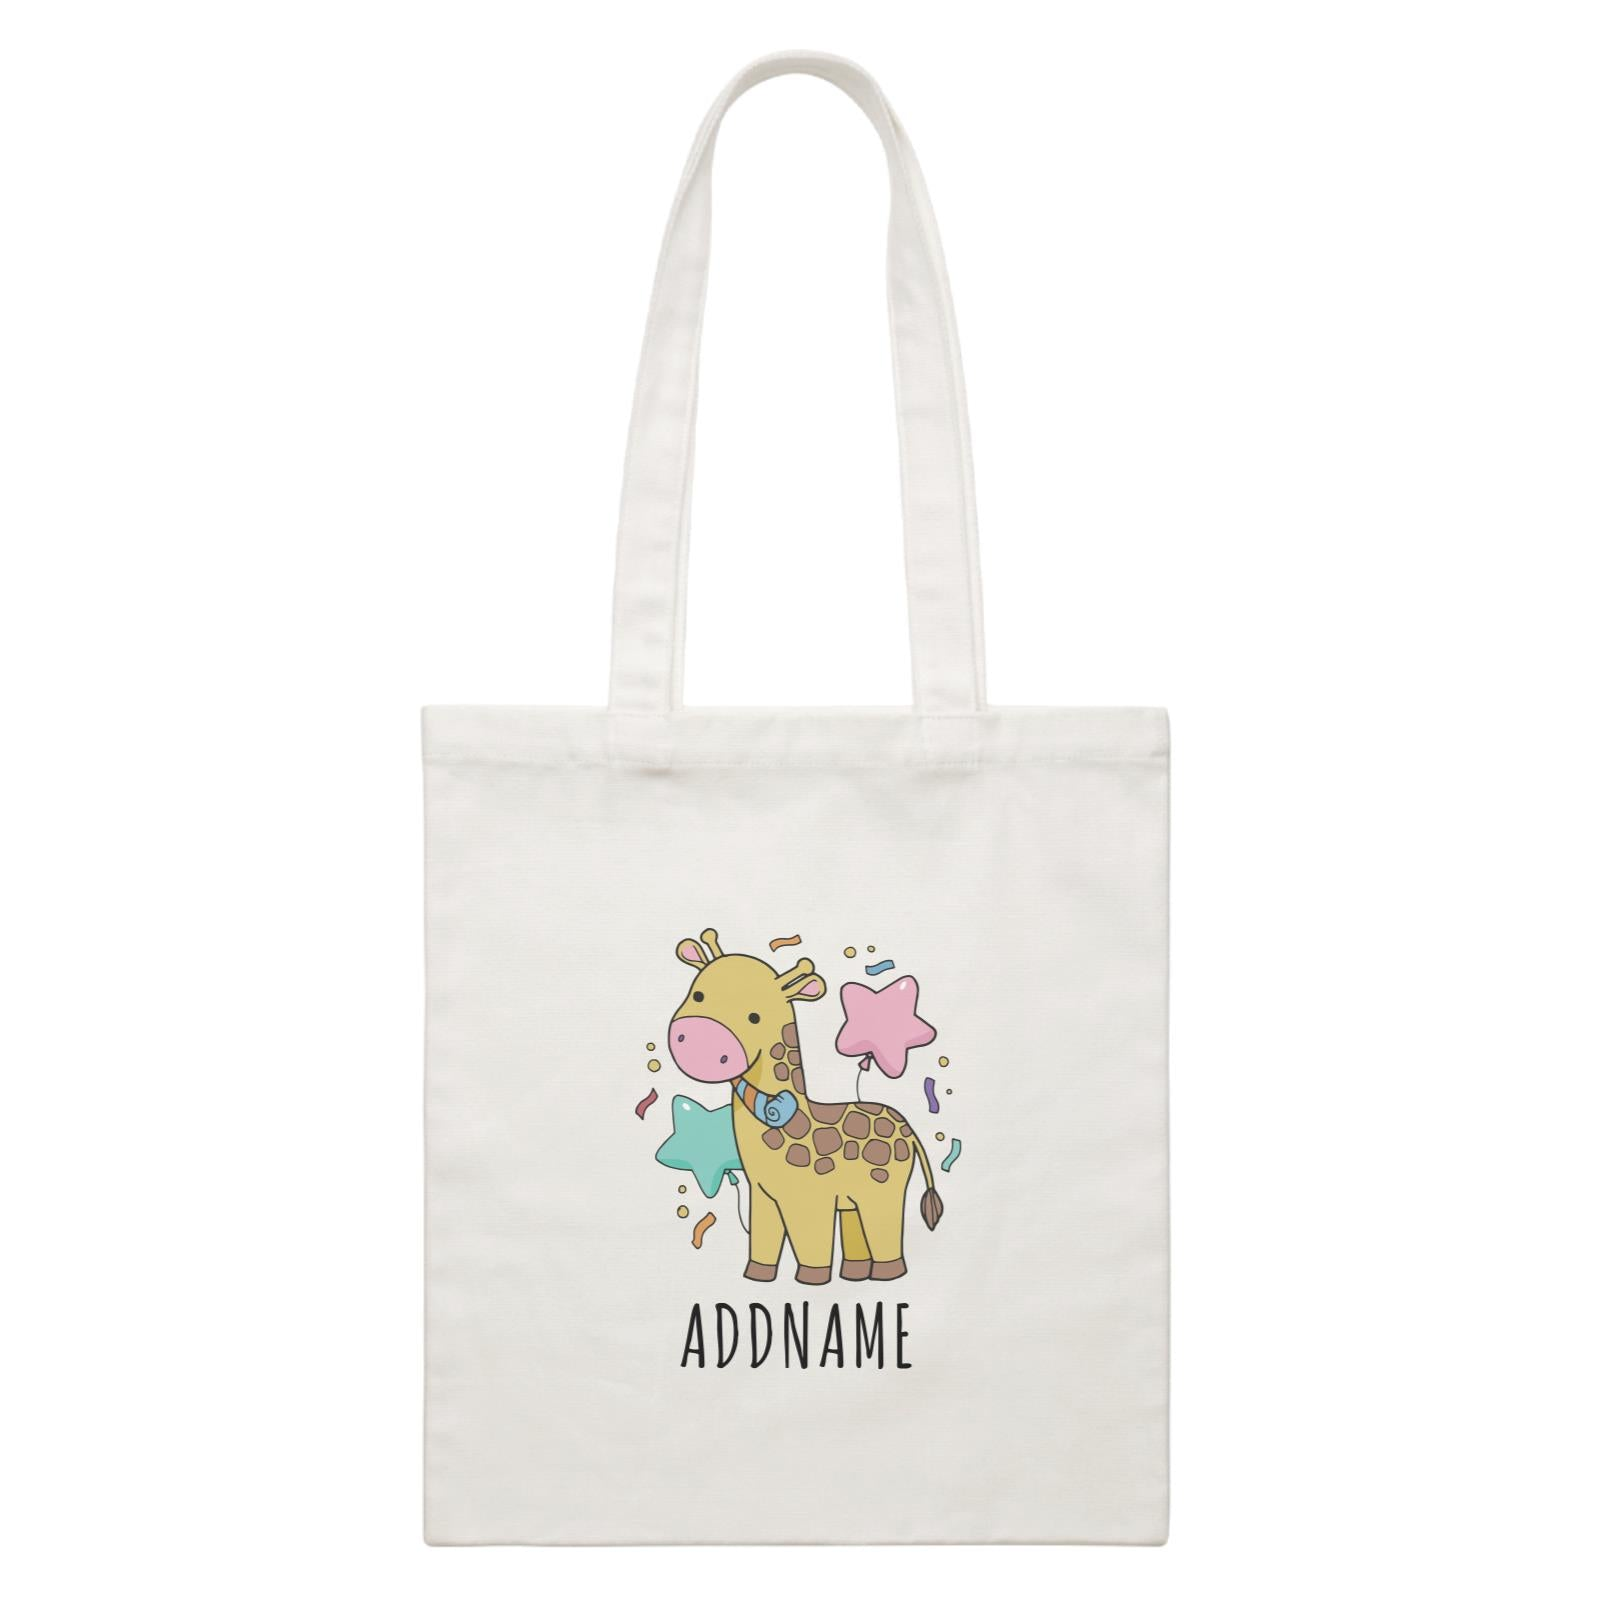 Birthday Sketch Animals Giraffe with Party Horn Addname White Canvas Bag